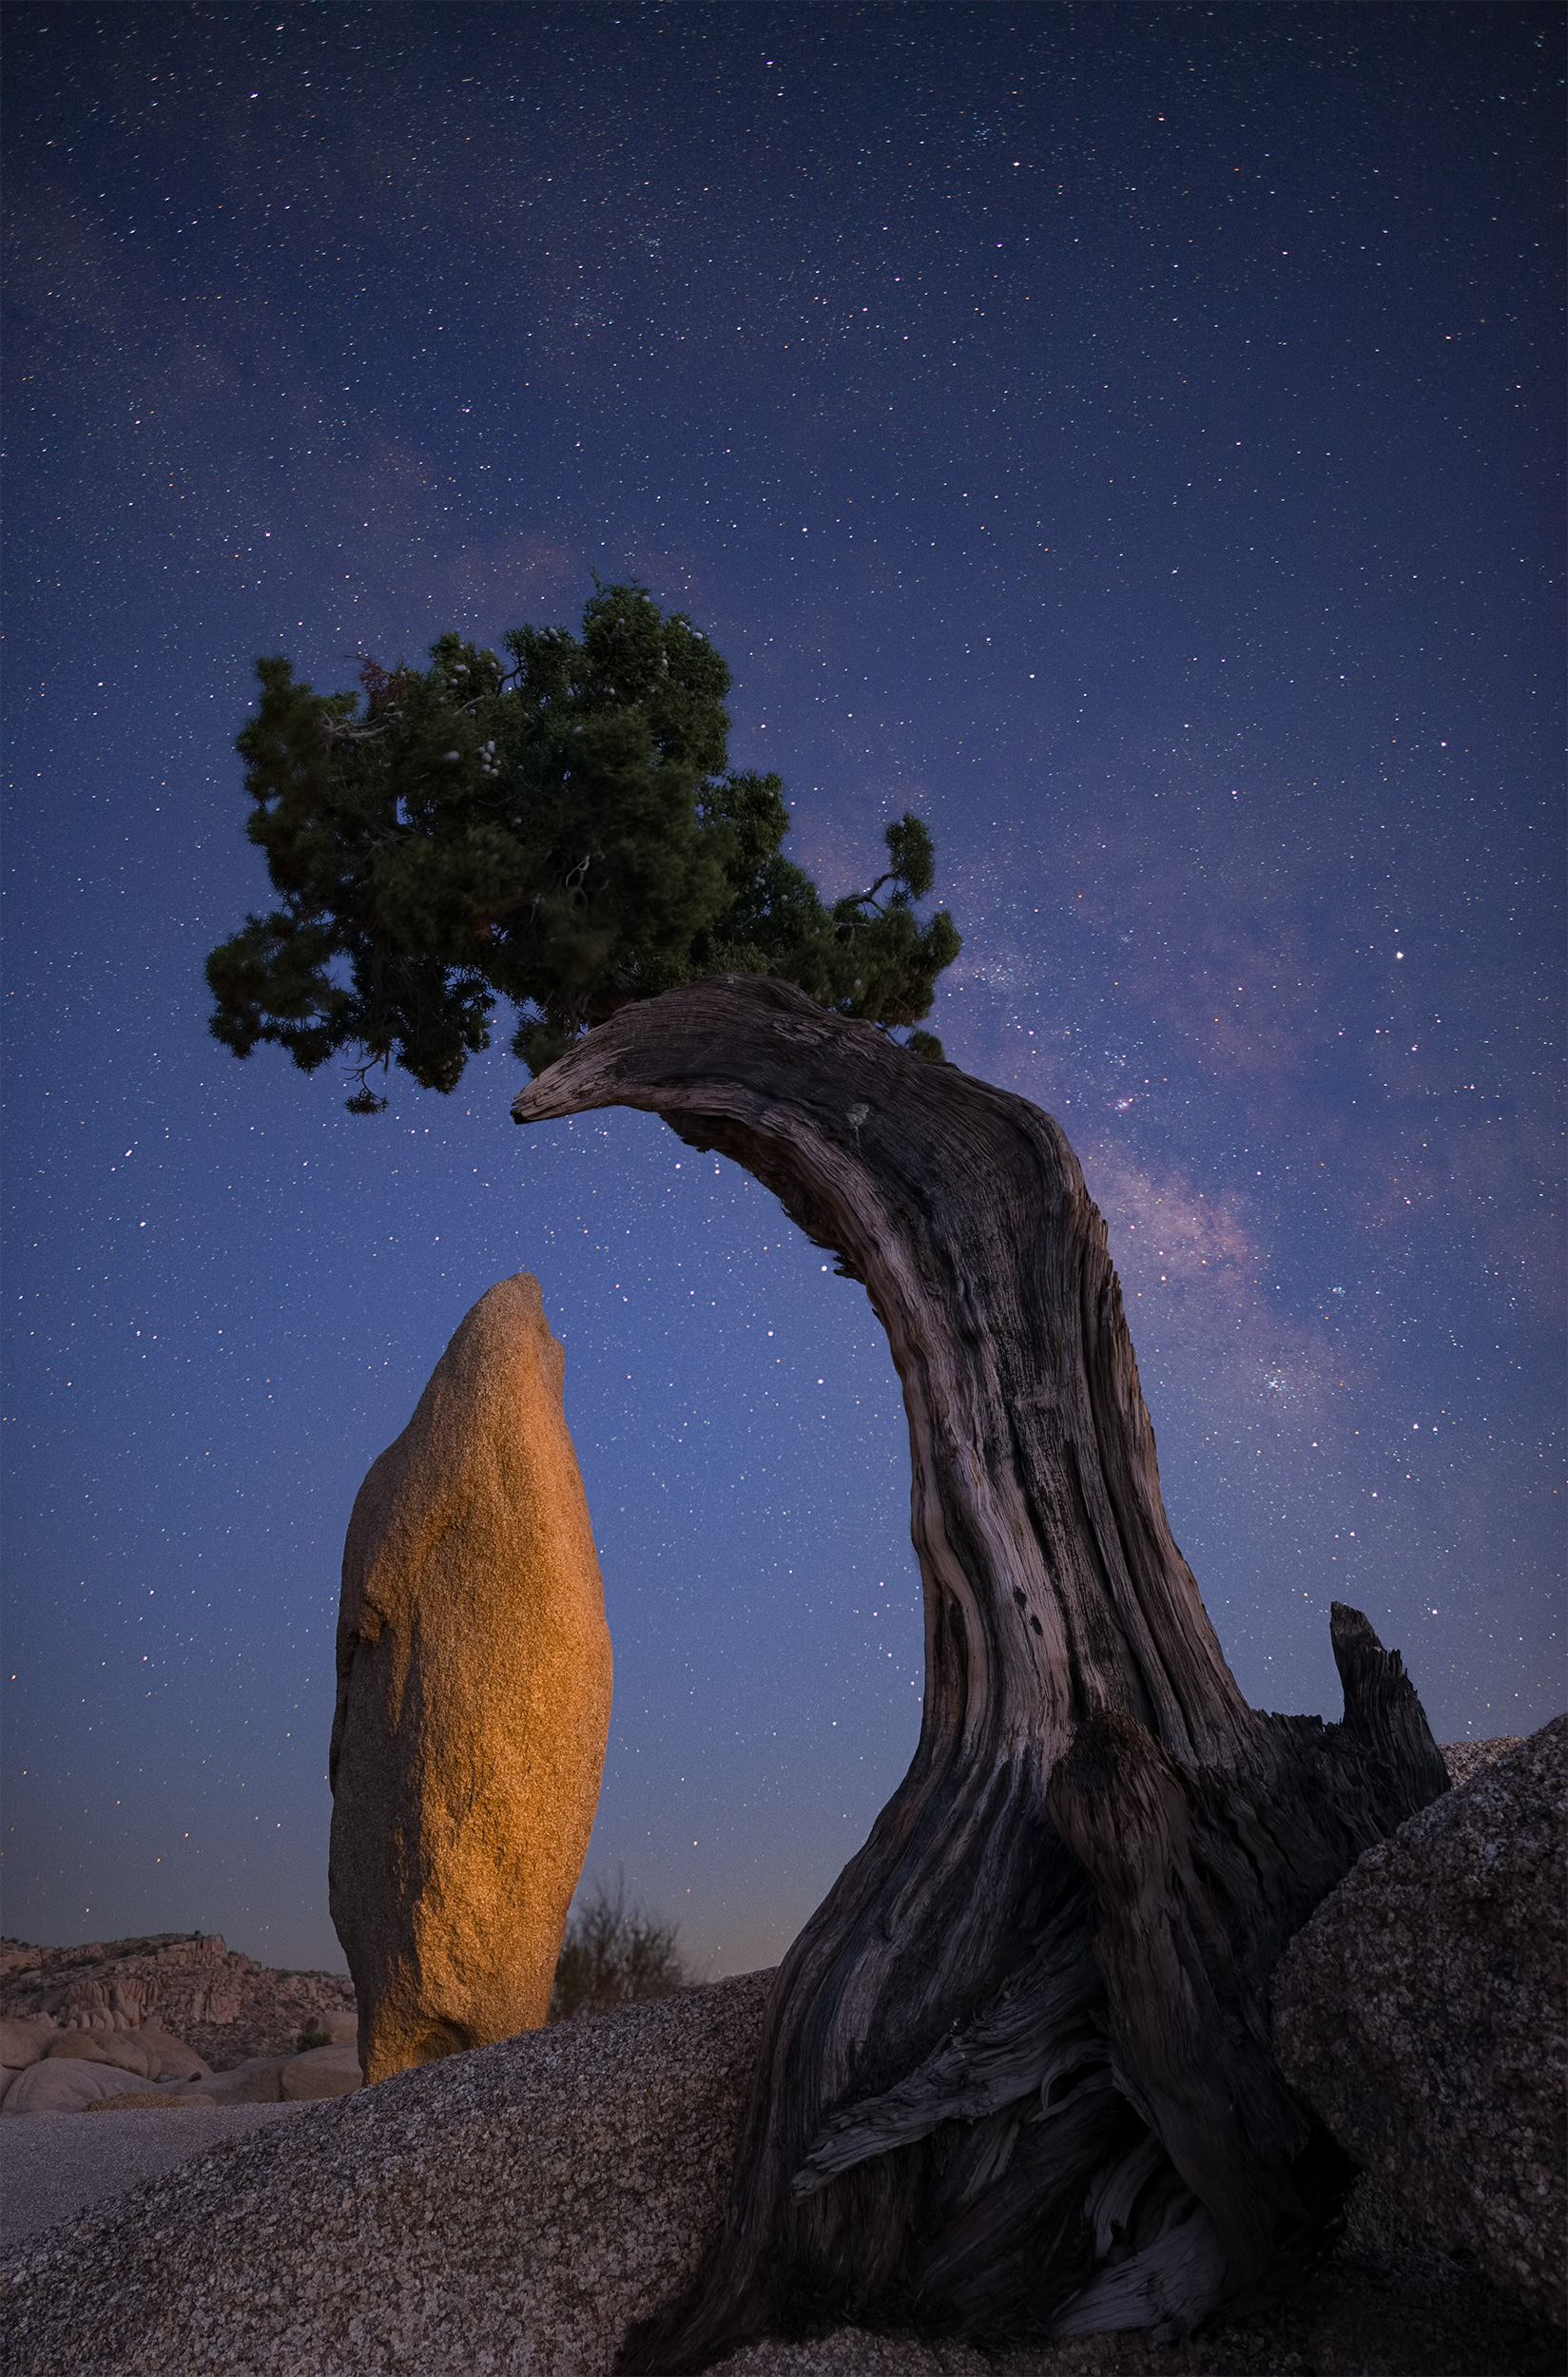 Final Image of The Juniper, Monolith & Milky Way.